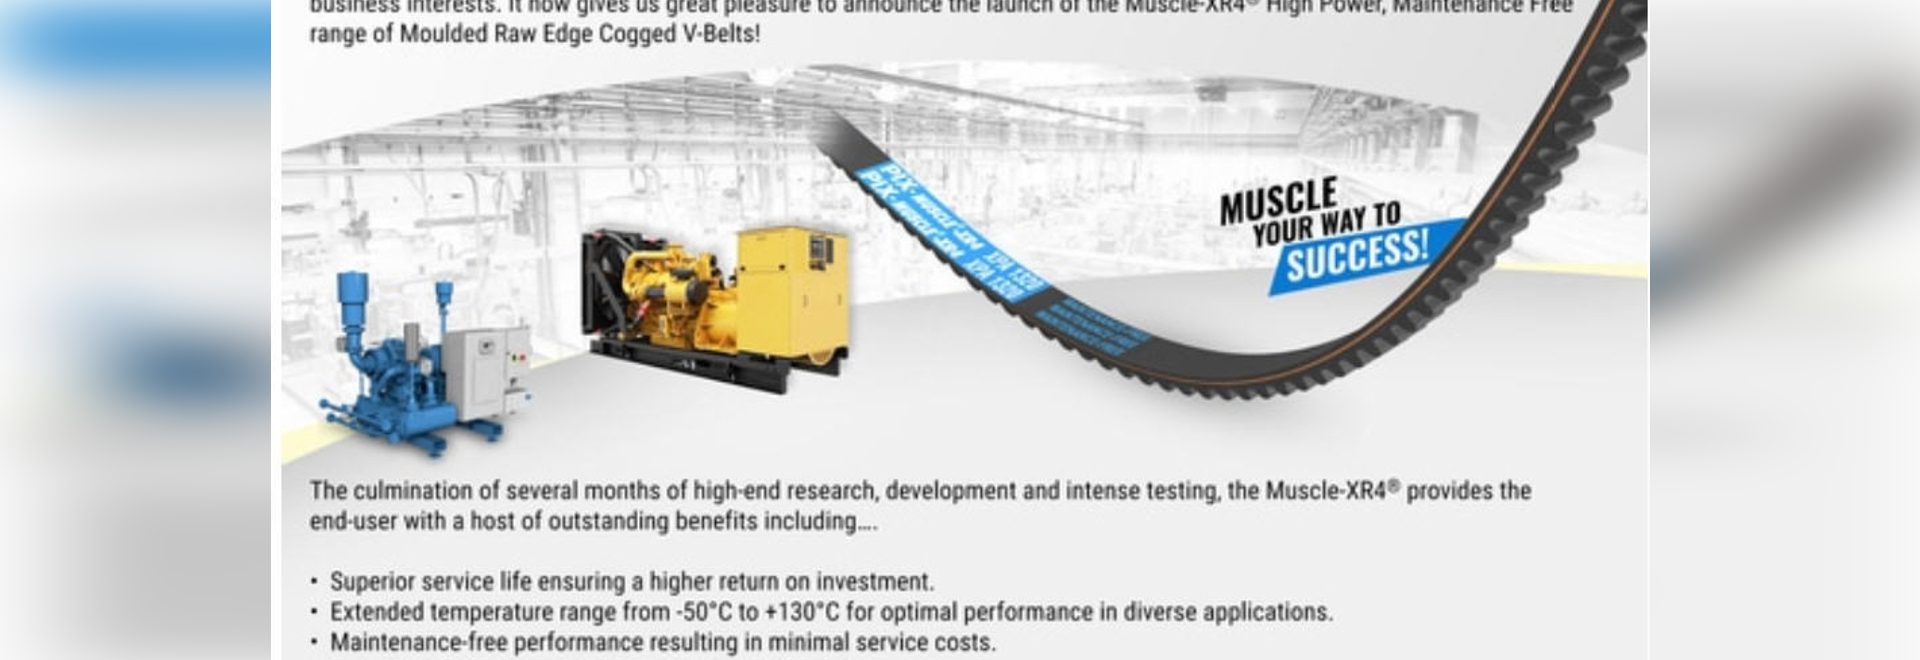 PIX - MUSCLE®-XR4 High-power, Maintenance-free, Moulded Raw Edge Cogged Belts